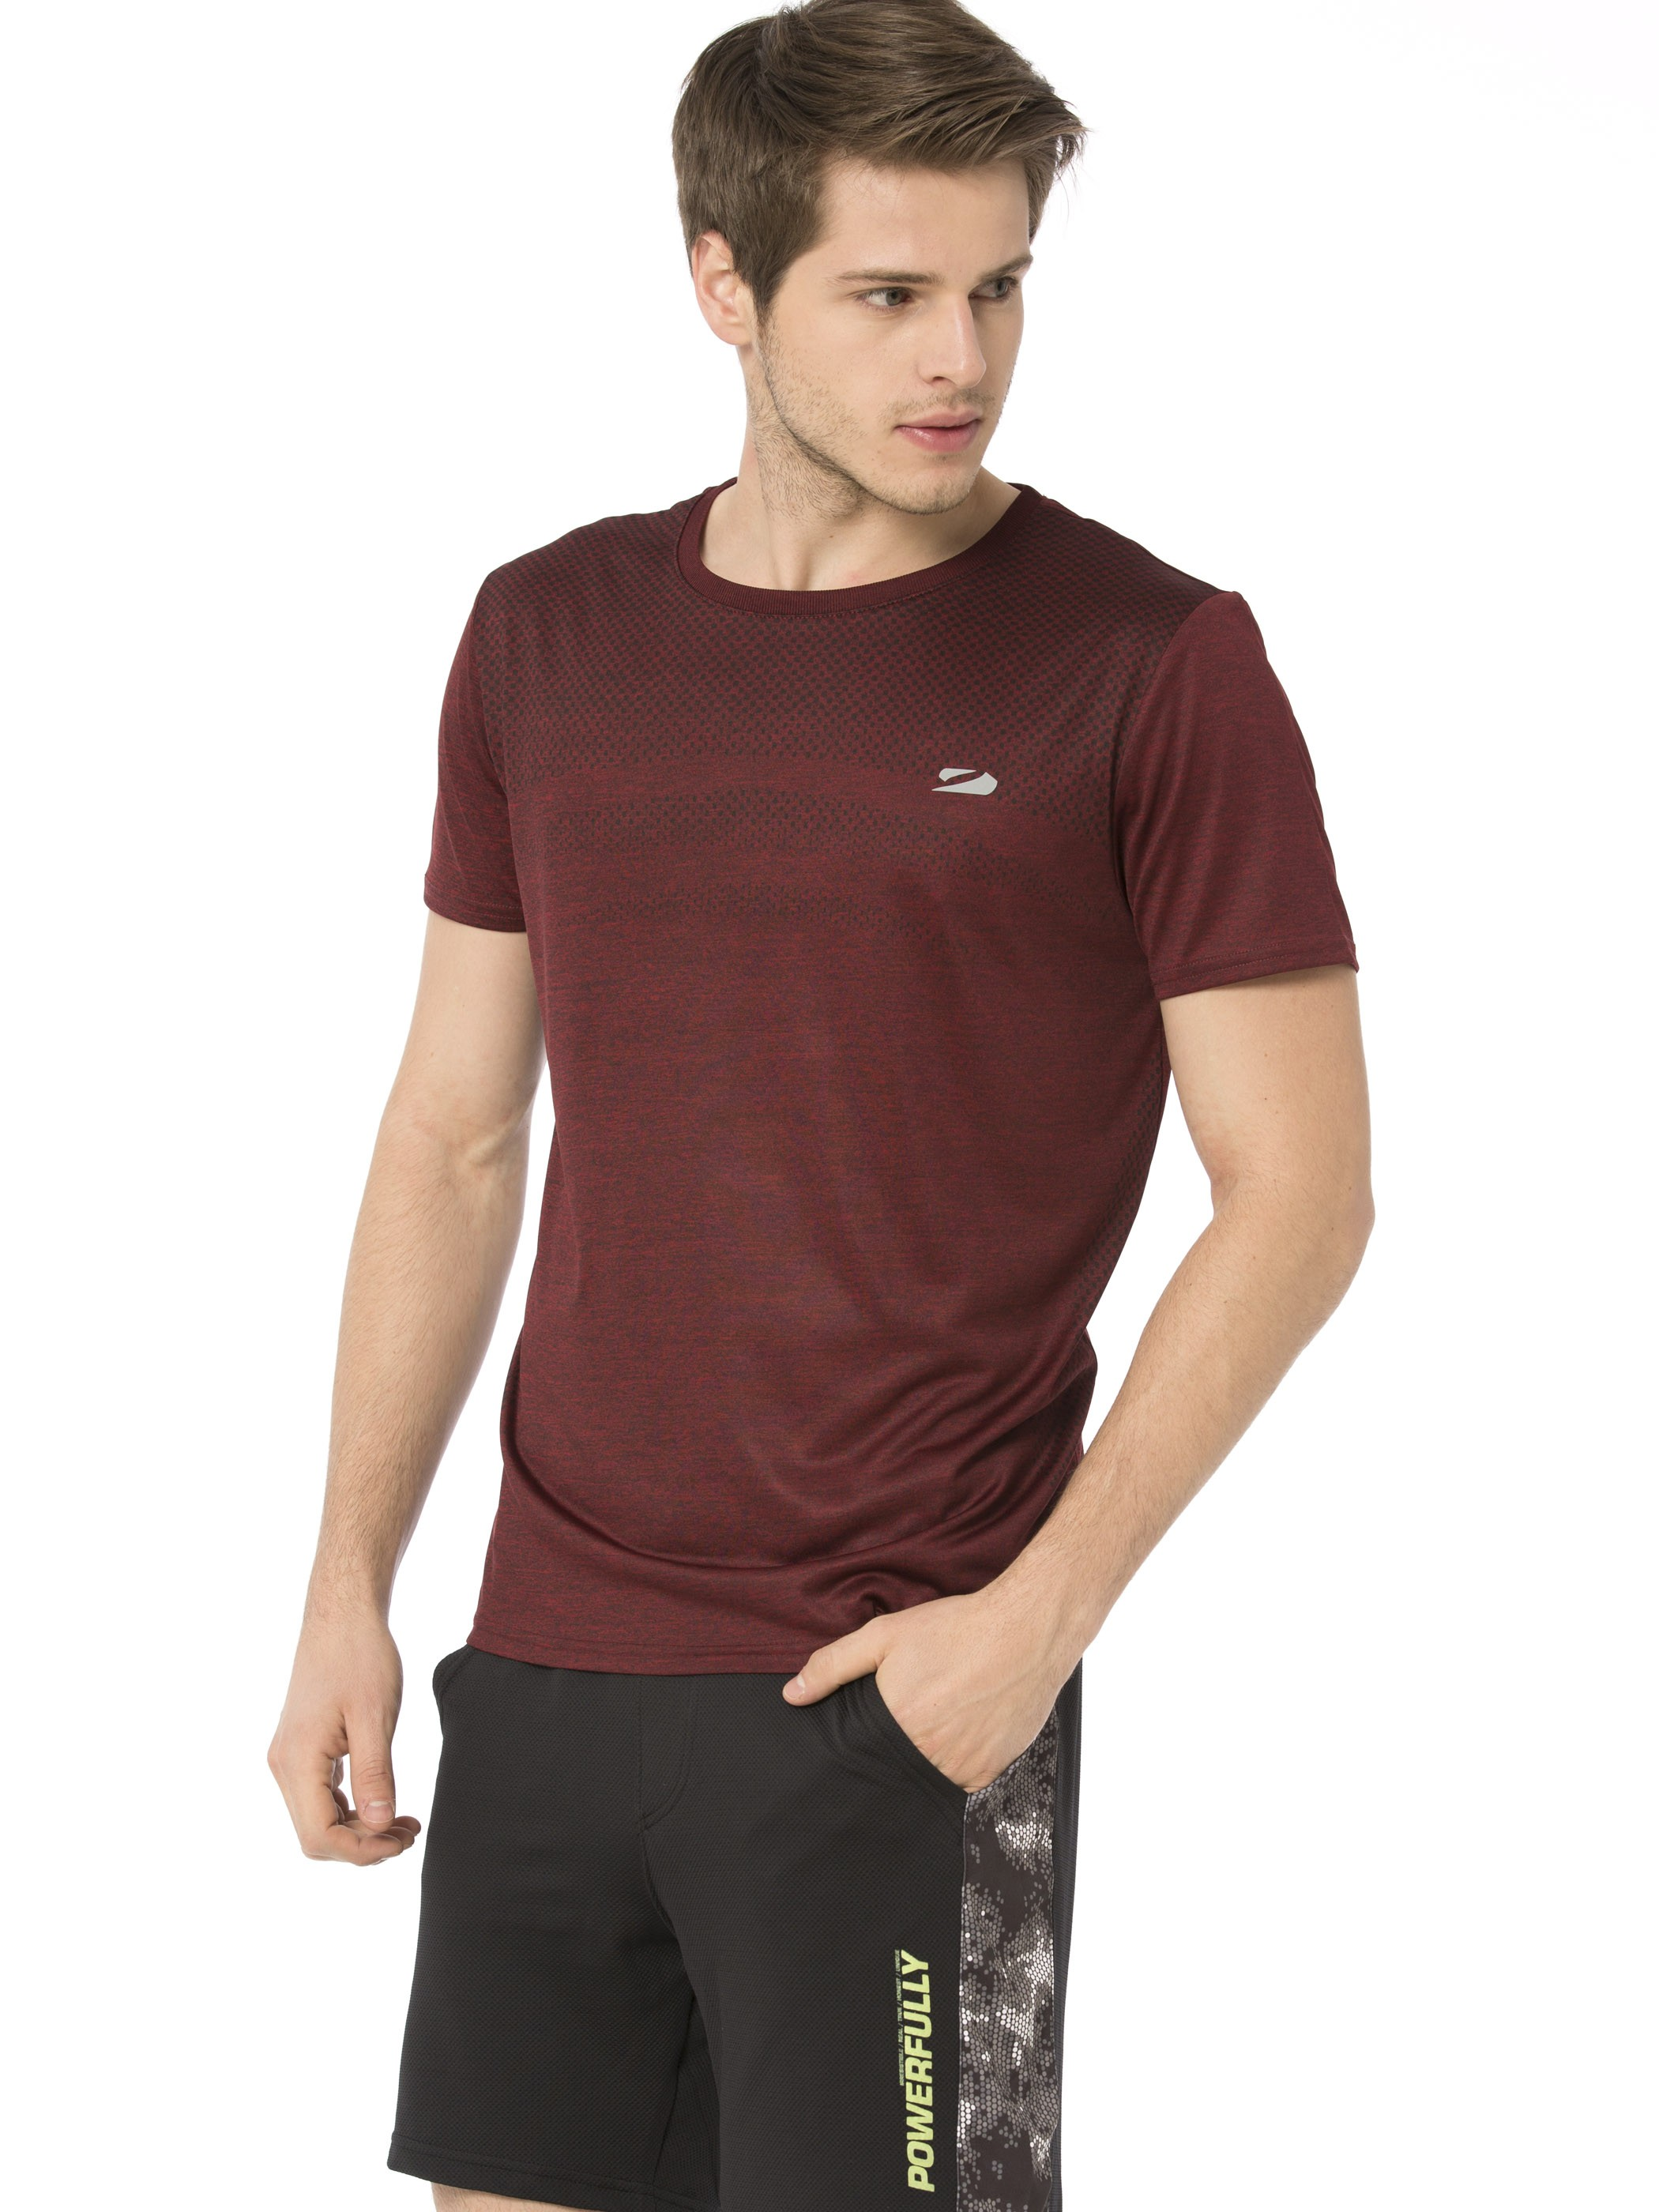 RED - T-Shirt - 8S9796Z8